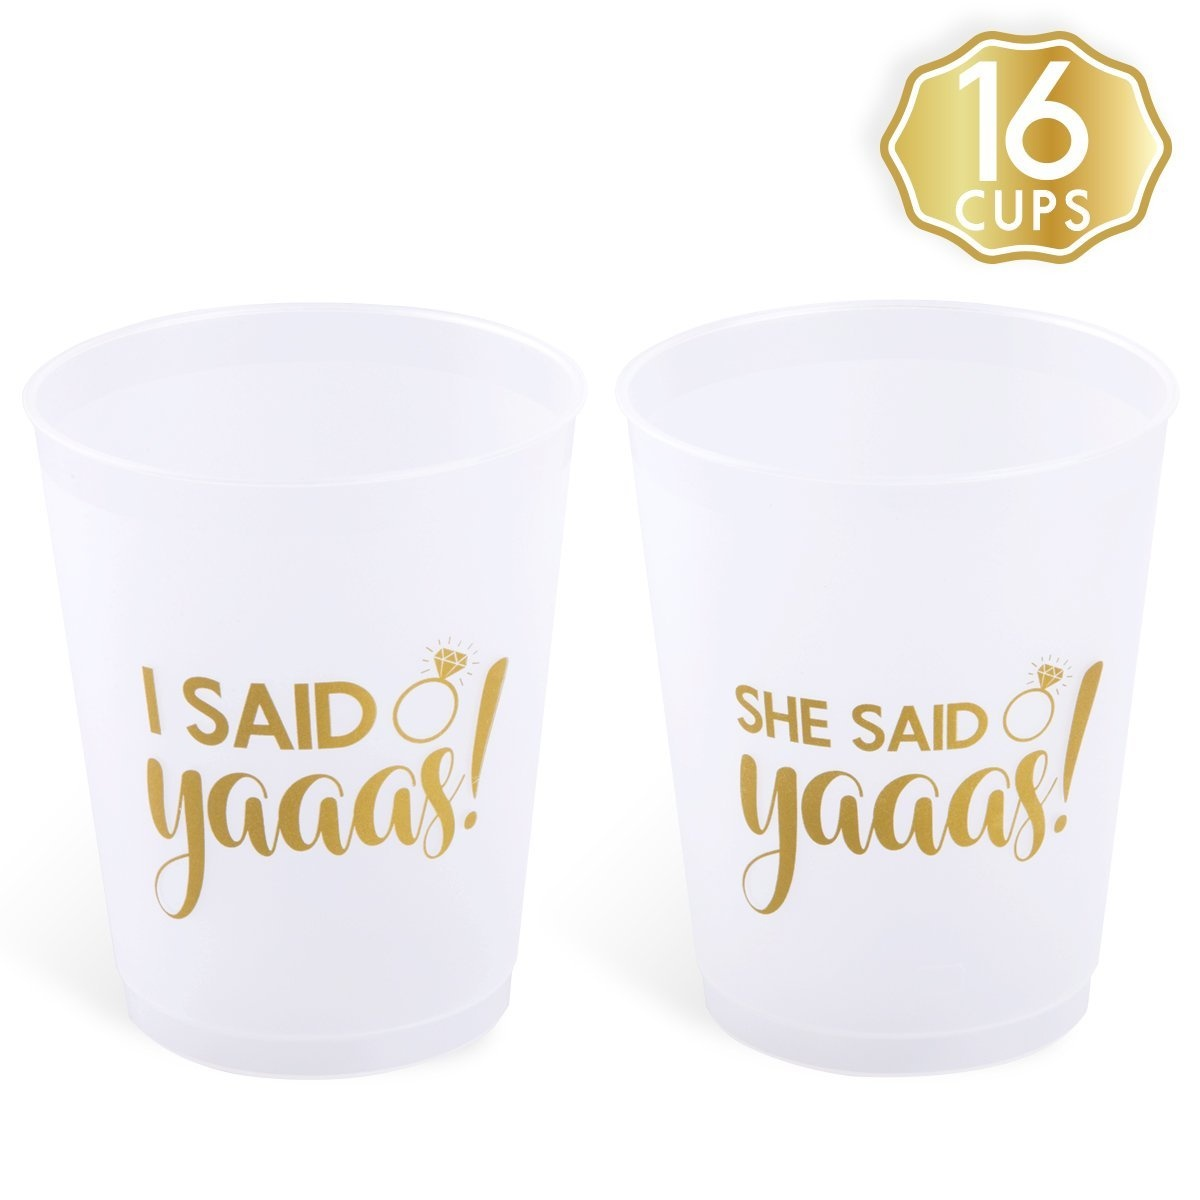 she said yaaas bachelorette party bridal shower cups w bonus i said yaaas style 16 count 470ml engagement party decoration and bride to be gift by